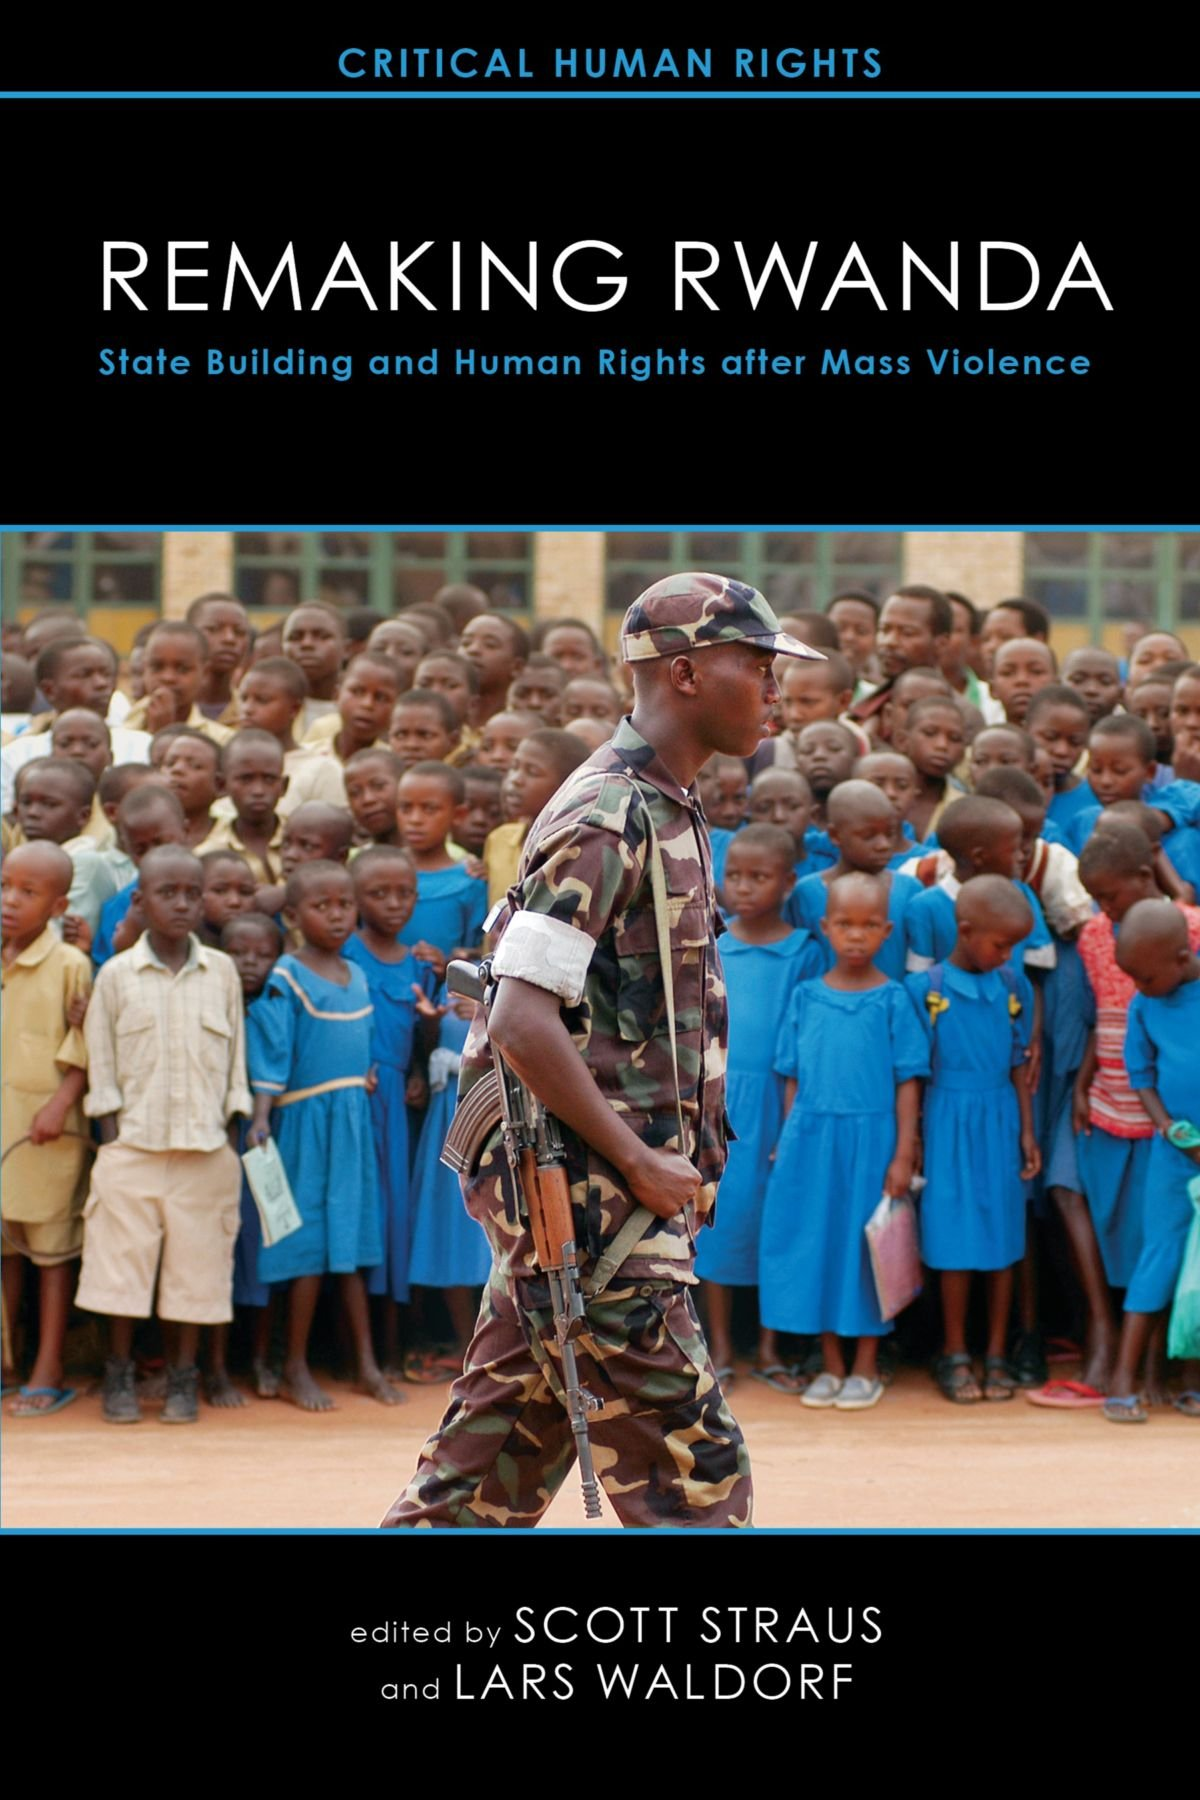 remaking-rwanda-state-building-and-human-rights-after-mass-violence-critical-human-rights